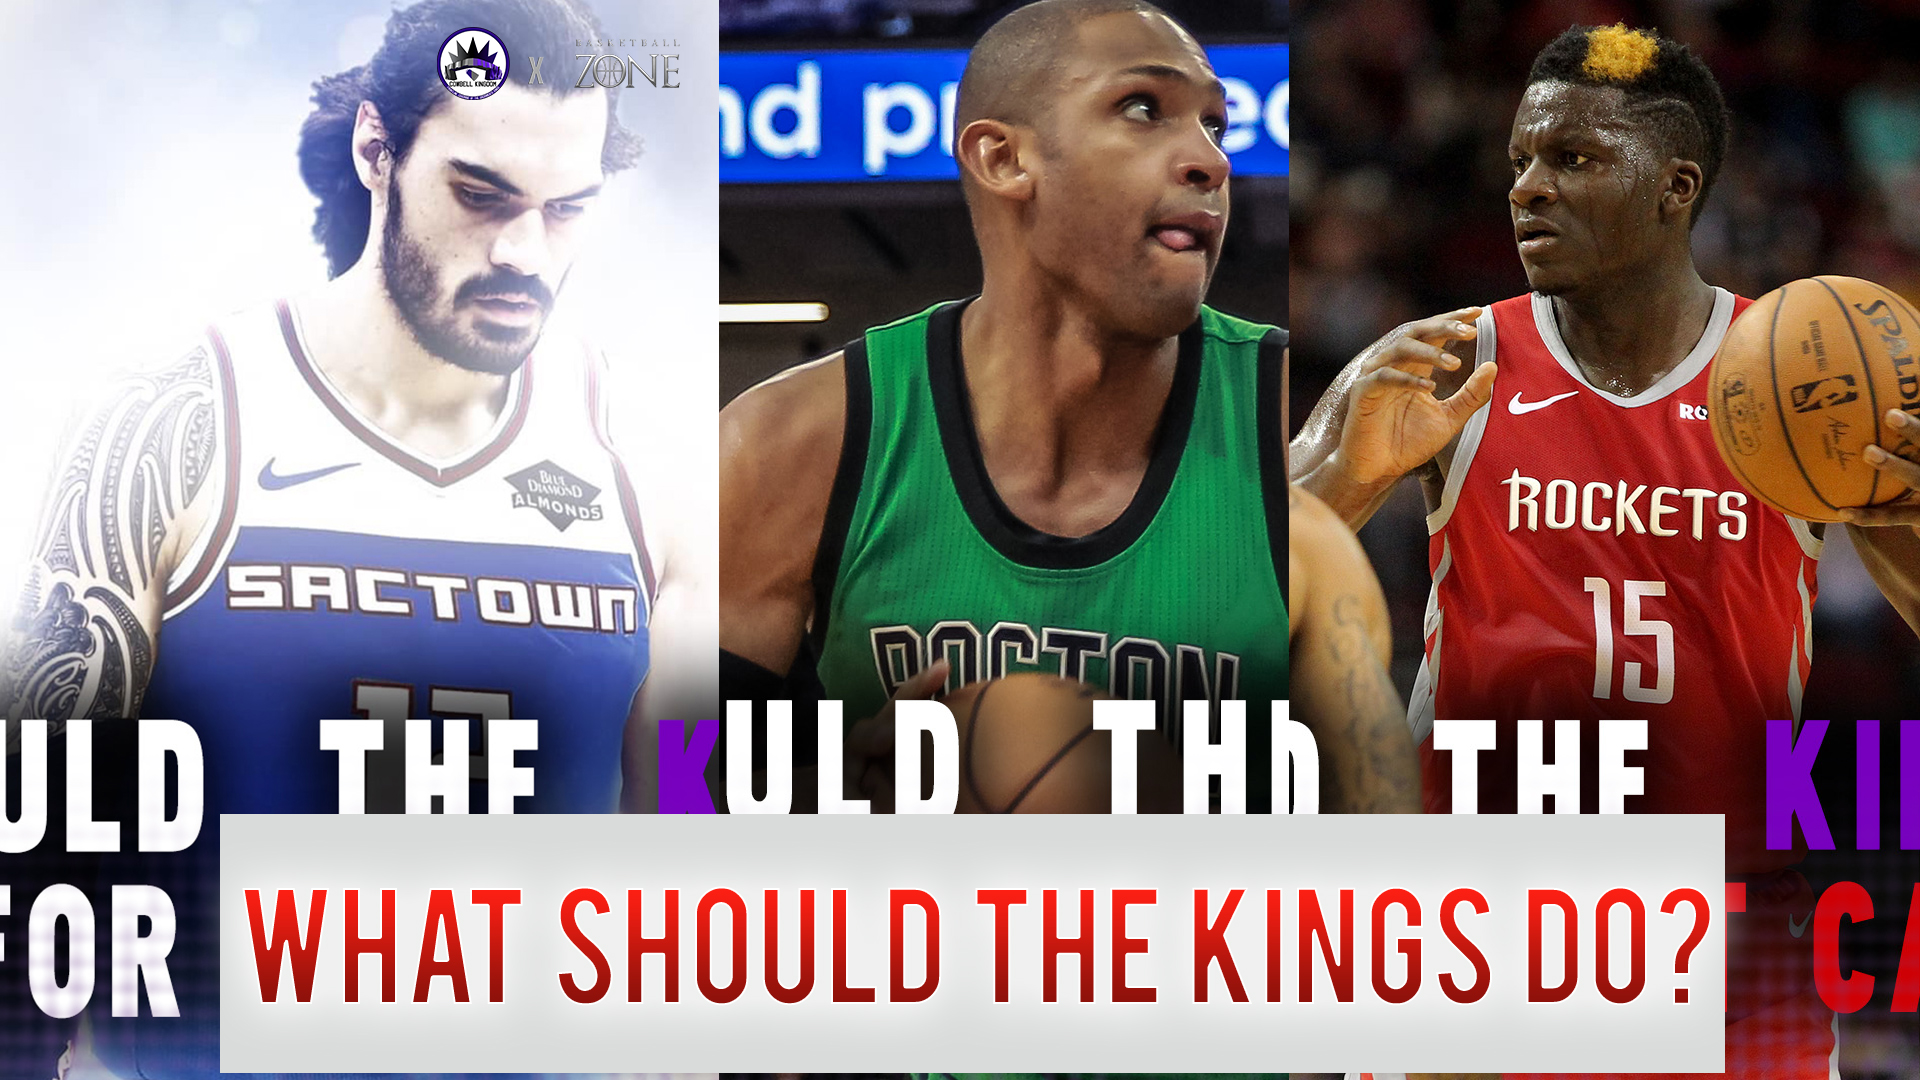 Which big should the Kings go after?